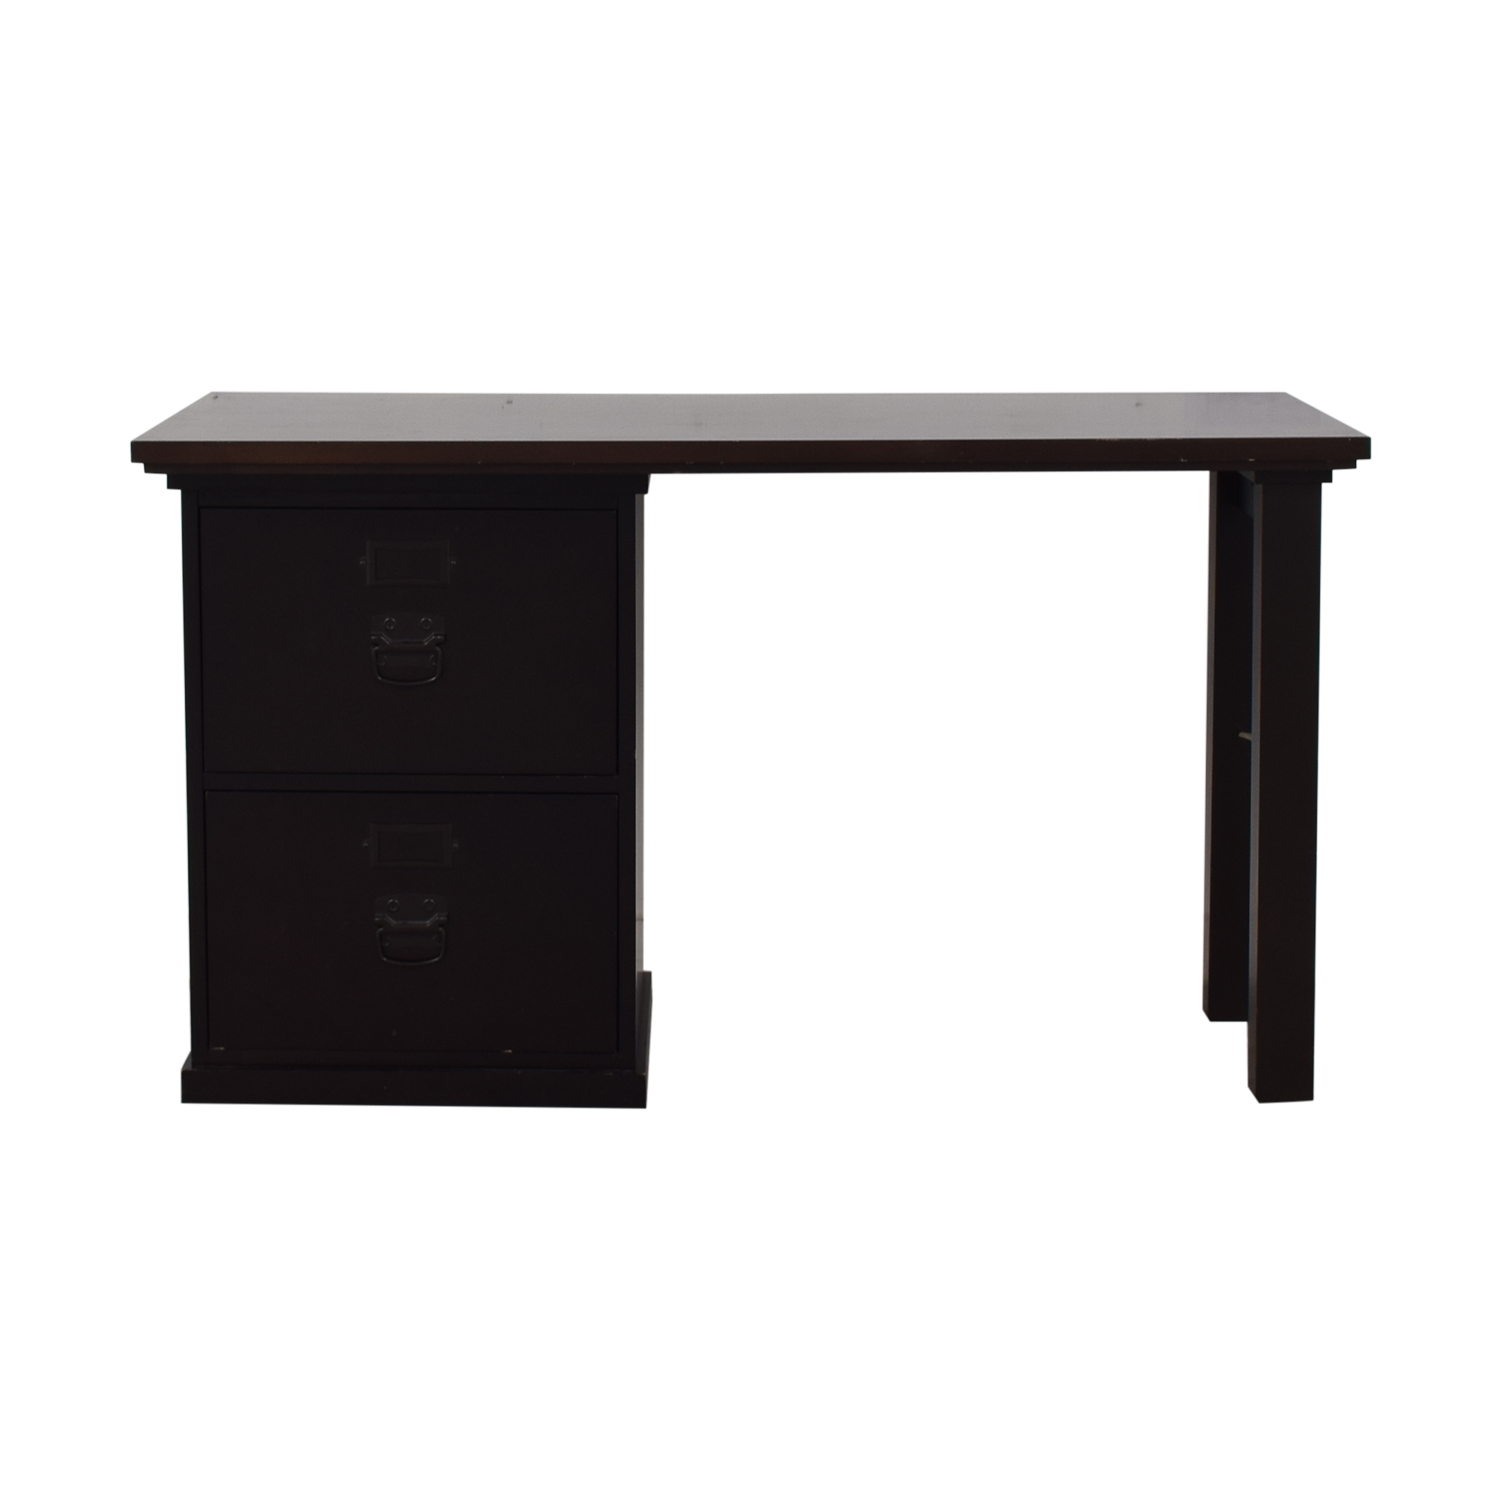 Pottery Barn Pottery Barn Two Drawer Desk price